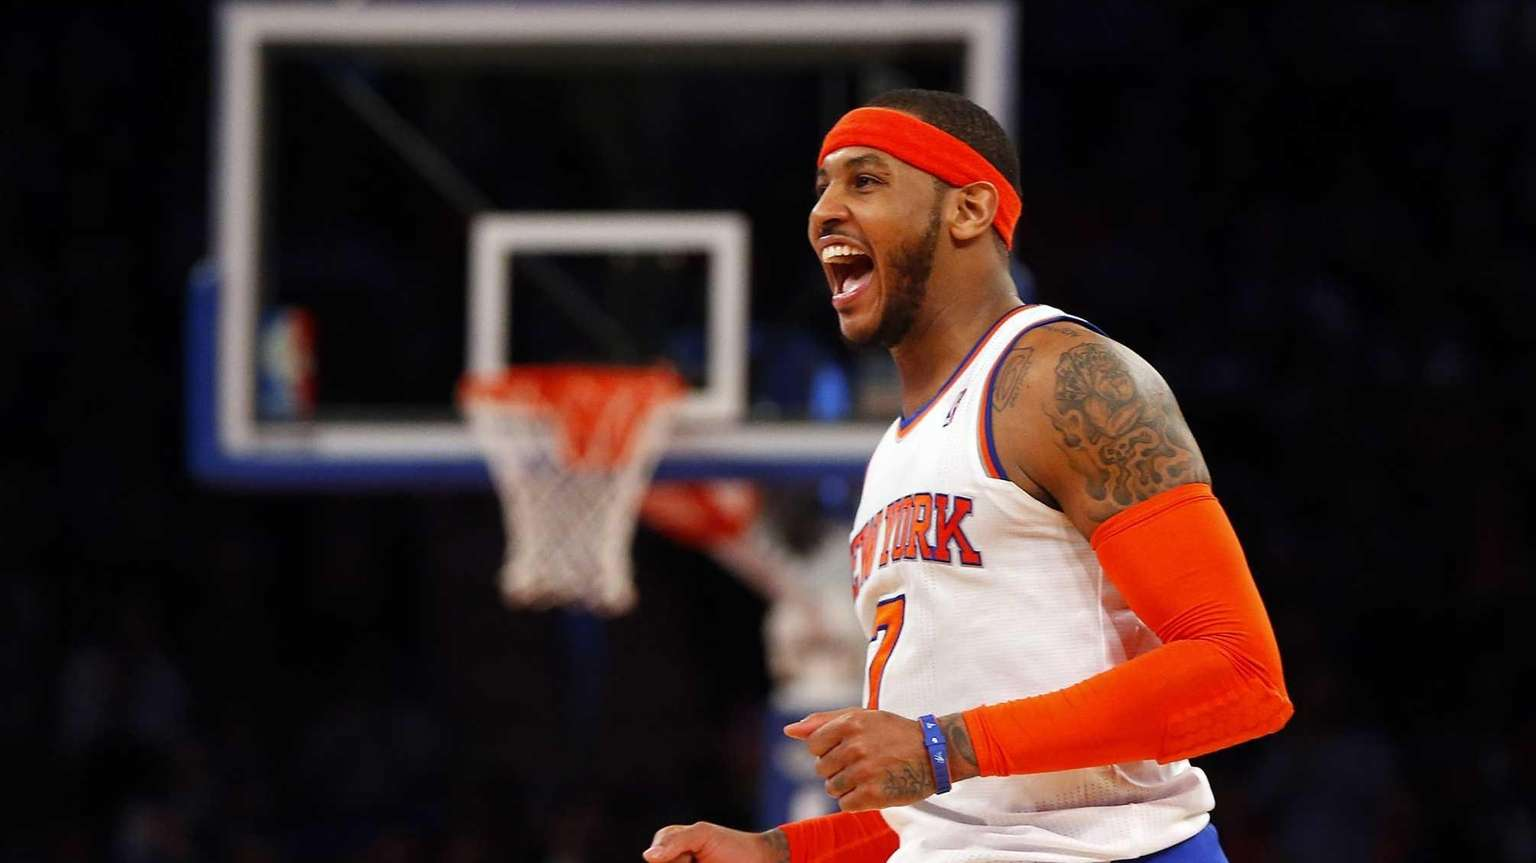 Melo stays